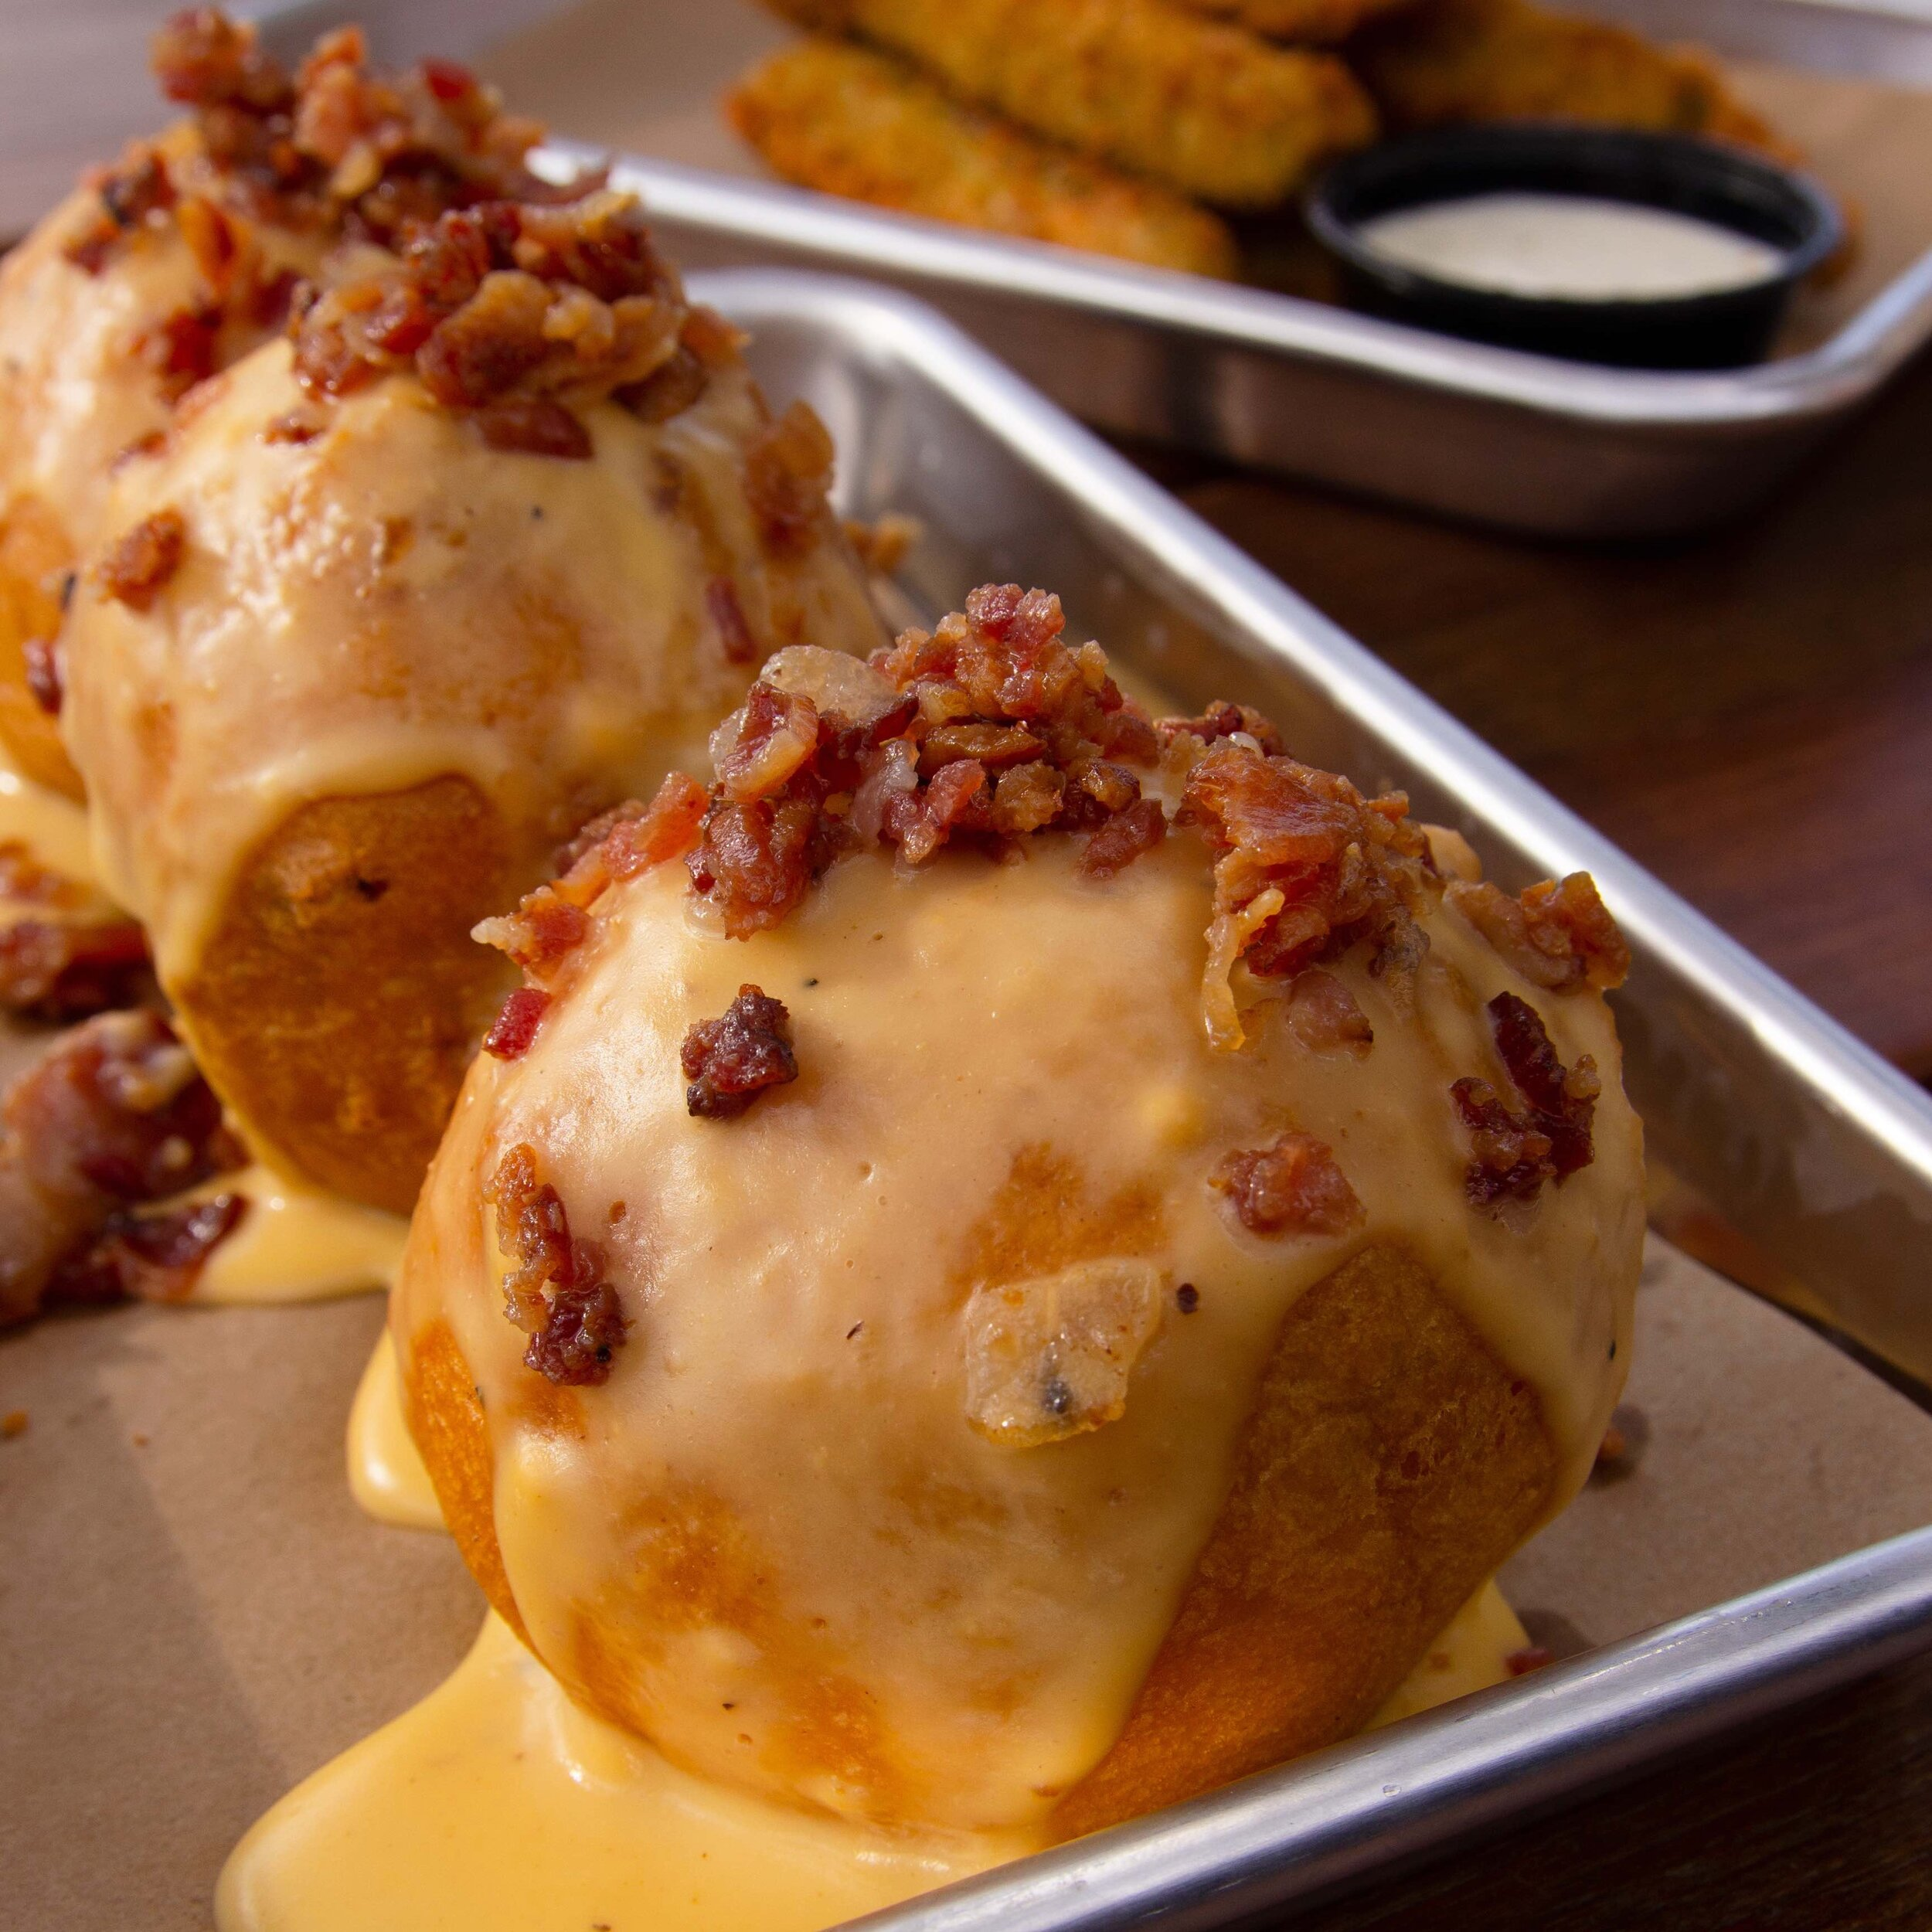 BEAR BALLS - 3 for $6  Mac & cheese, cornbread and pulled pork. Batter and fired. Topped with cheese sauce and Bacon